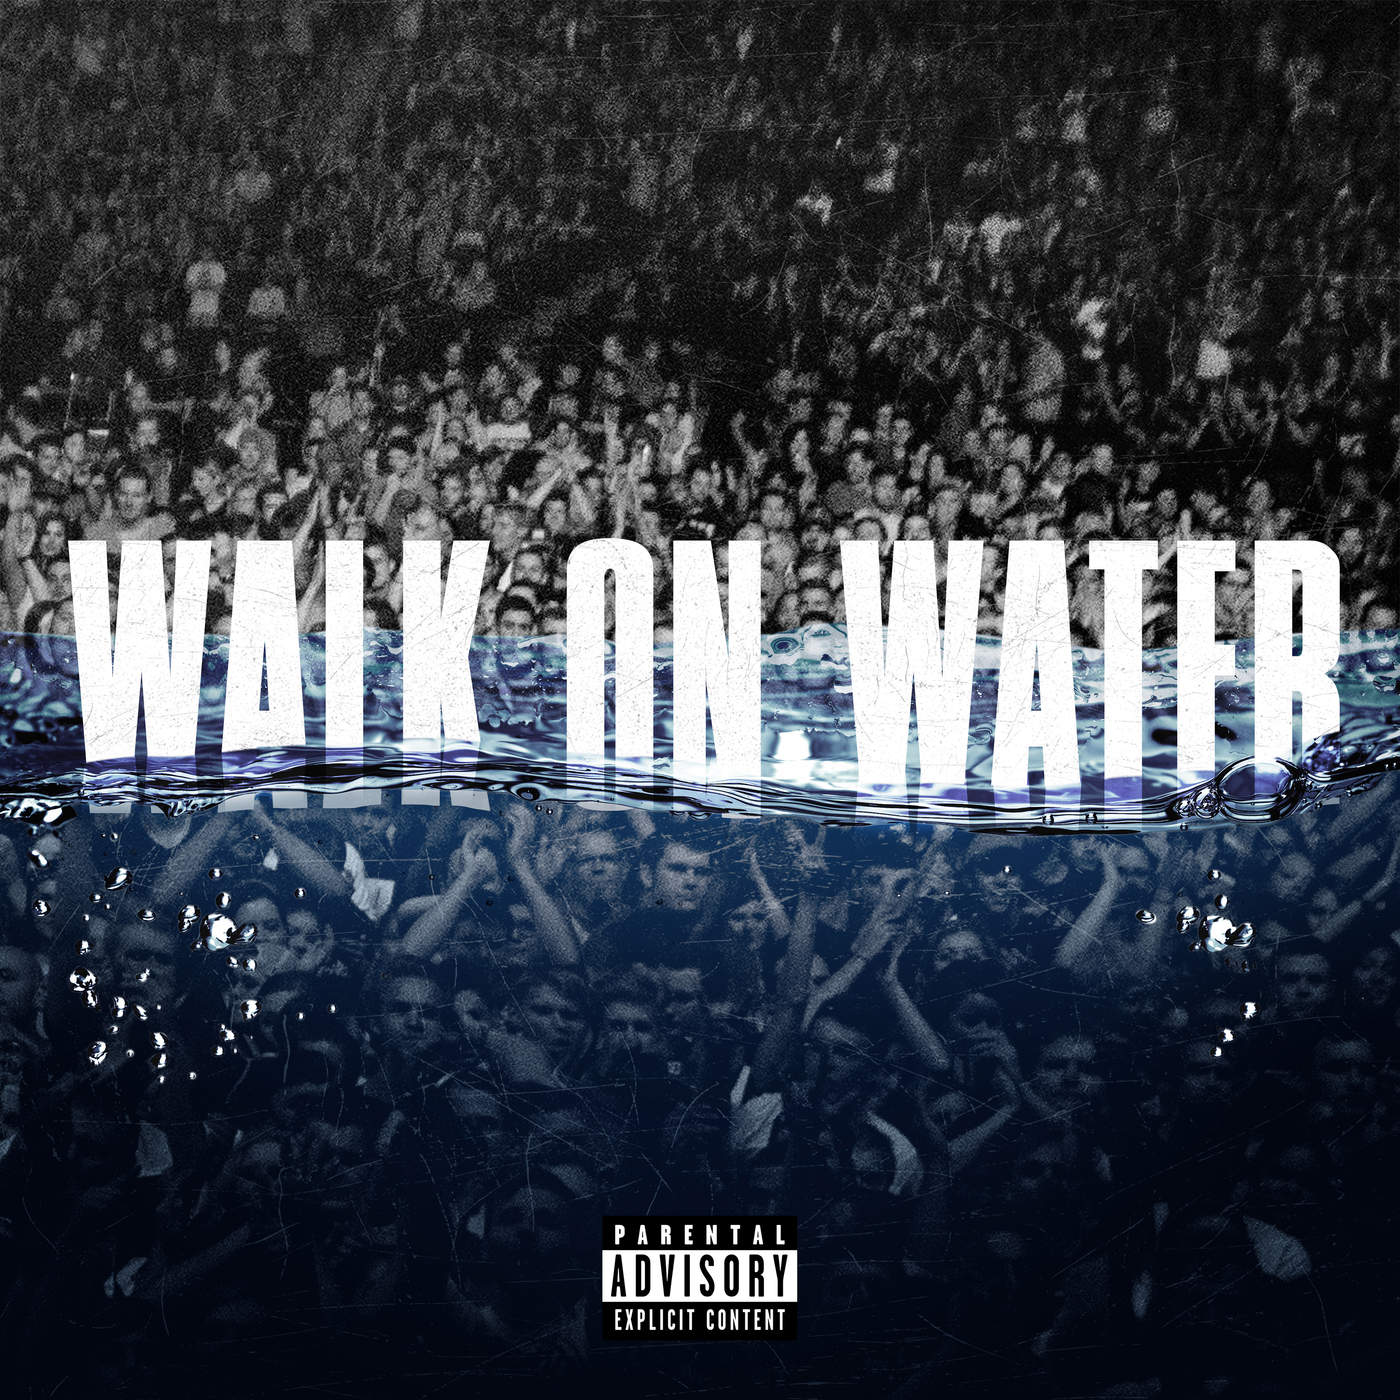 Eminem releases new single 'Walk On Water' featuring Beyonce